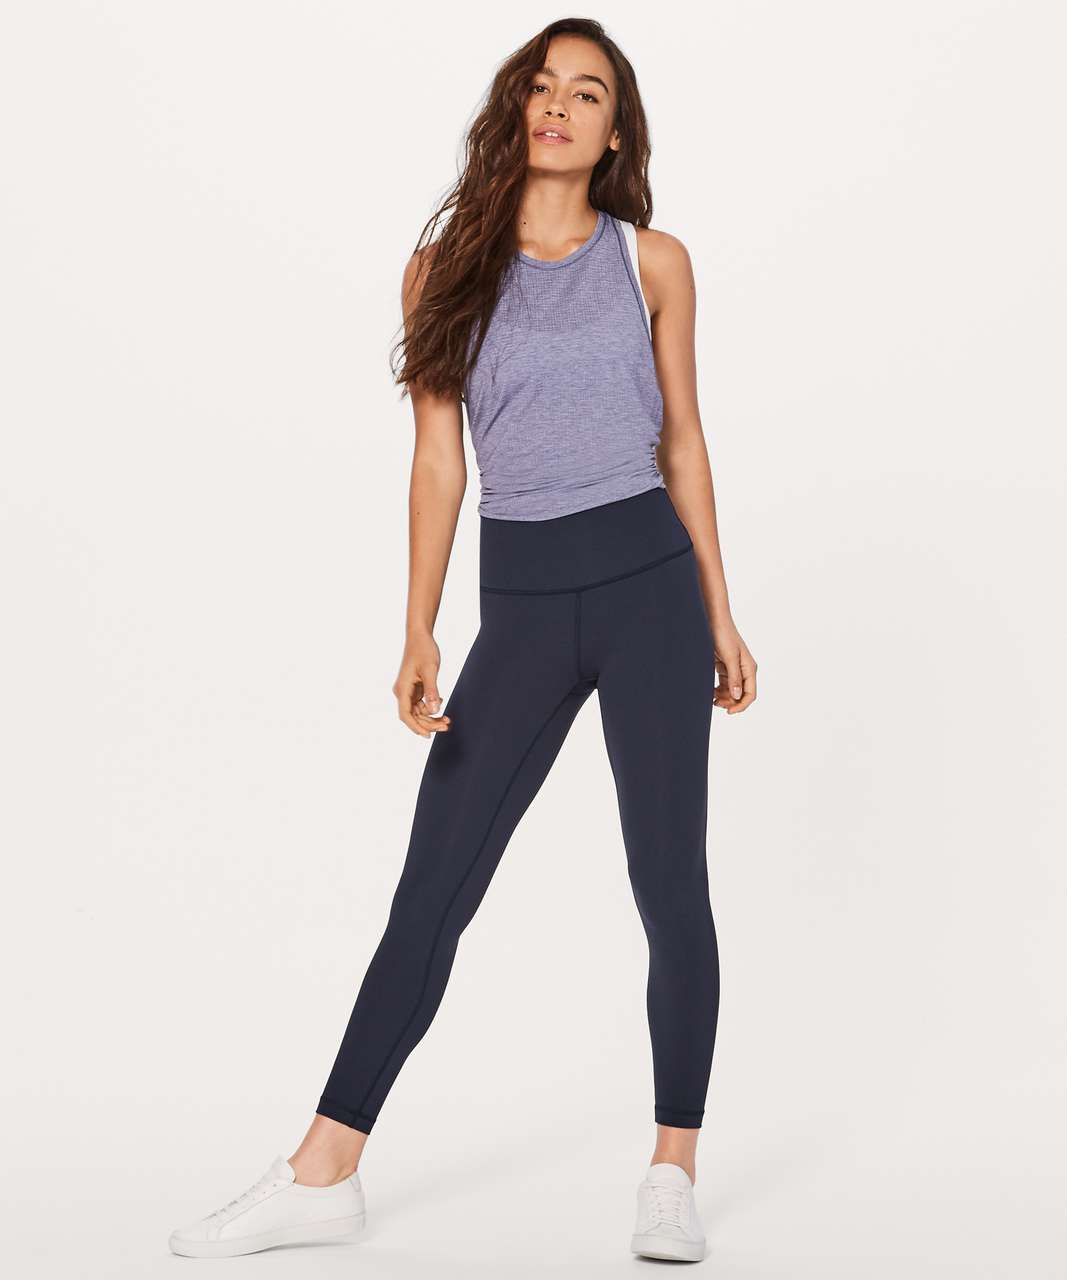 "Lululemon Wunder Under Hi-Rise 7/8 Tight *Brushed 25"" - Midnight Navy"